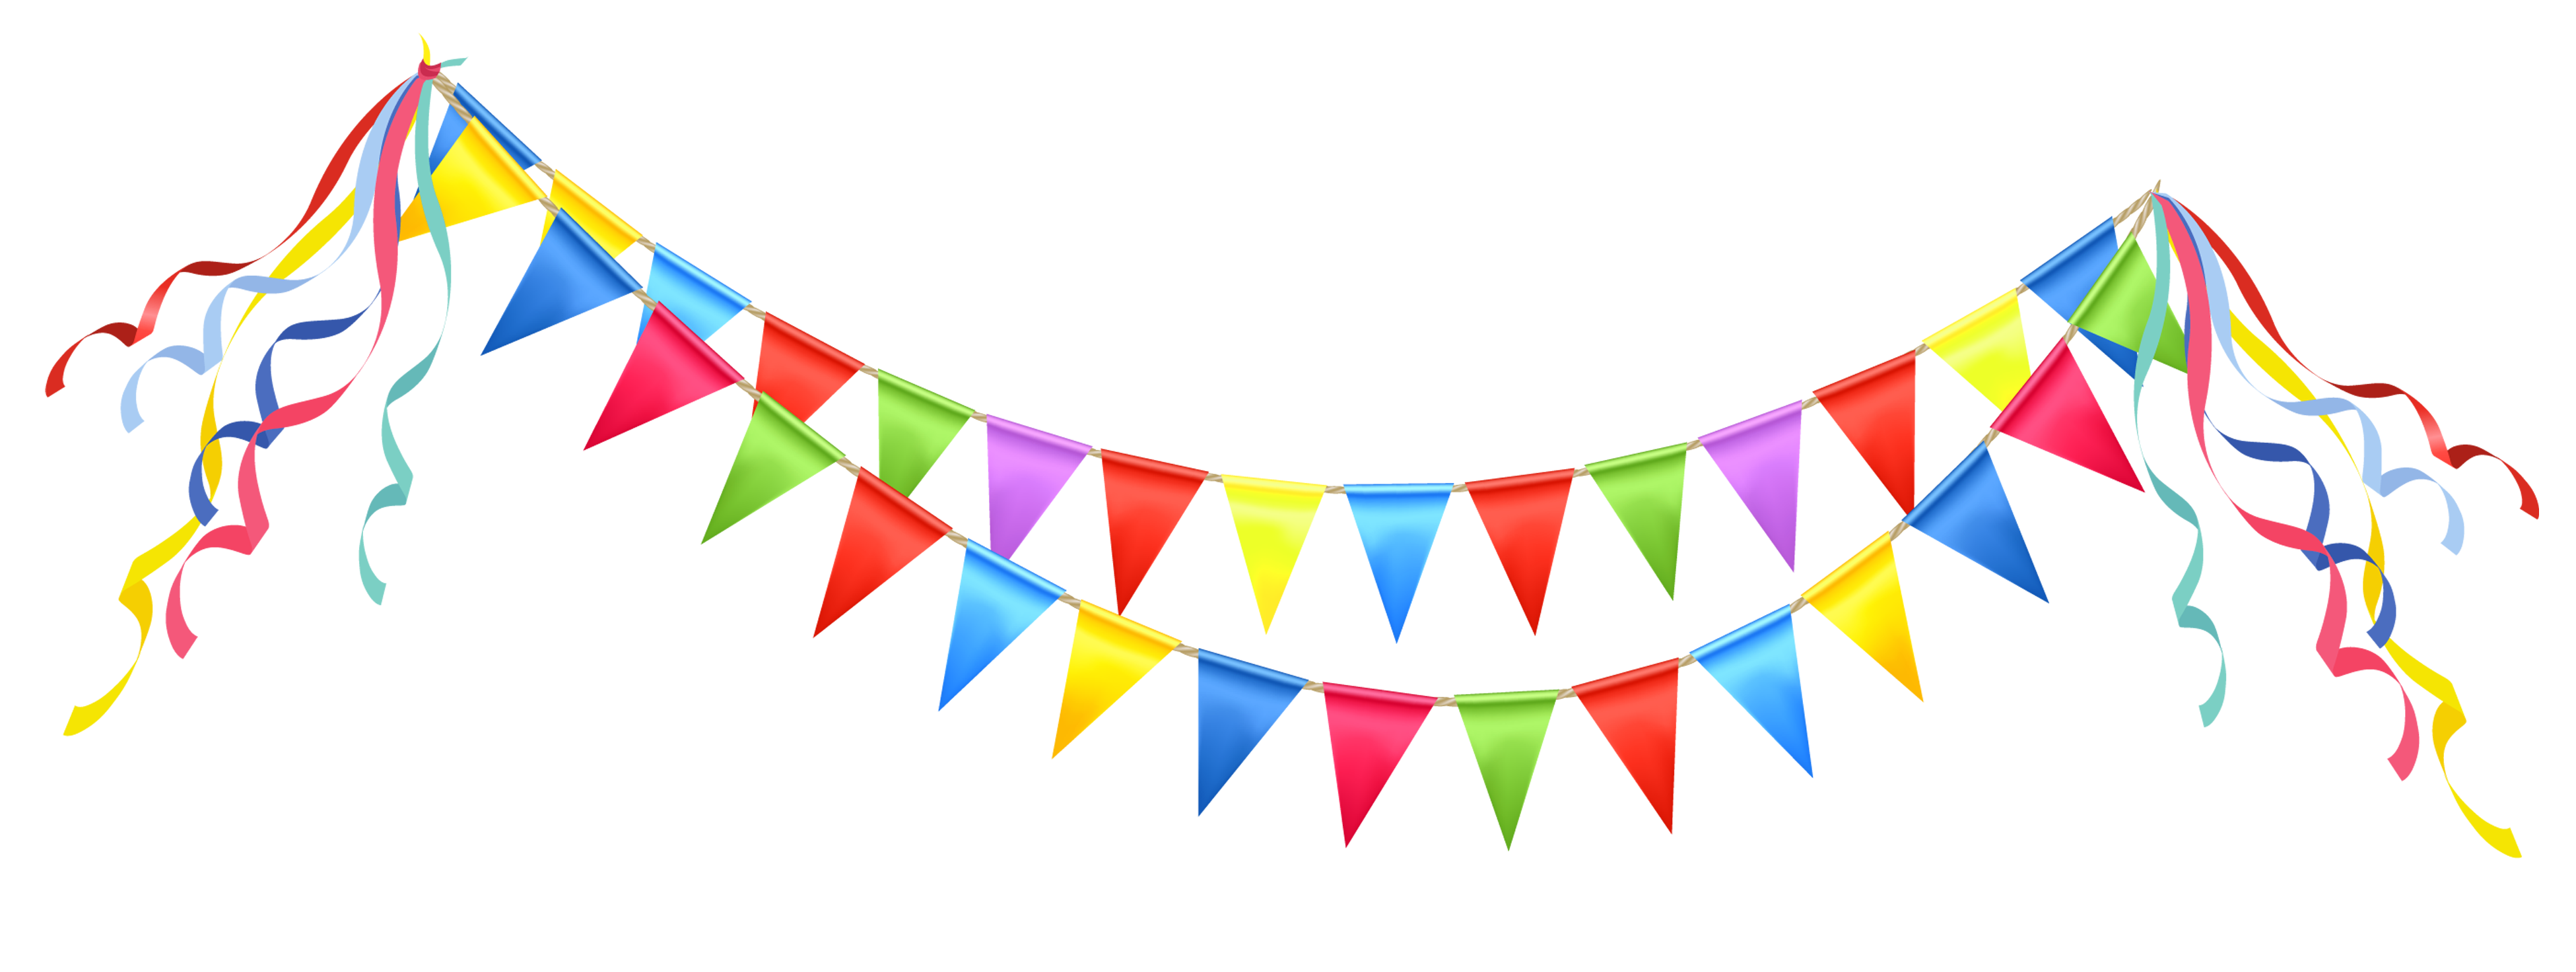 Party garland png. Parties clipart free download